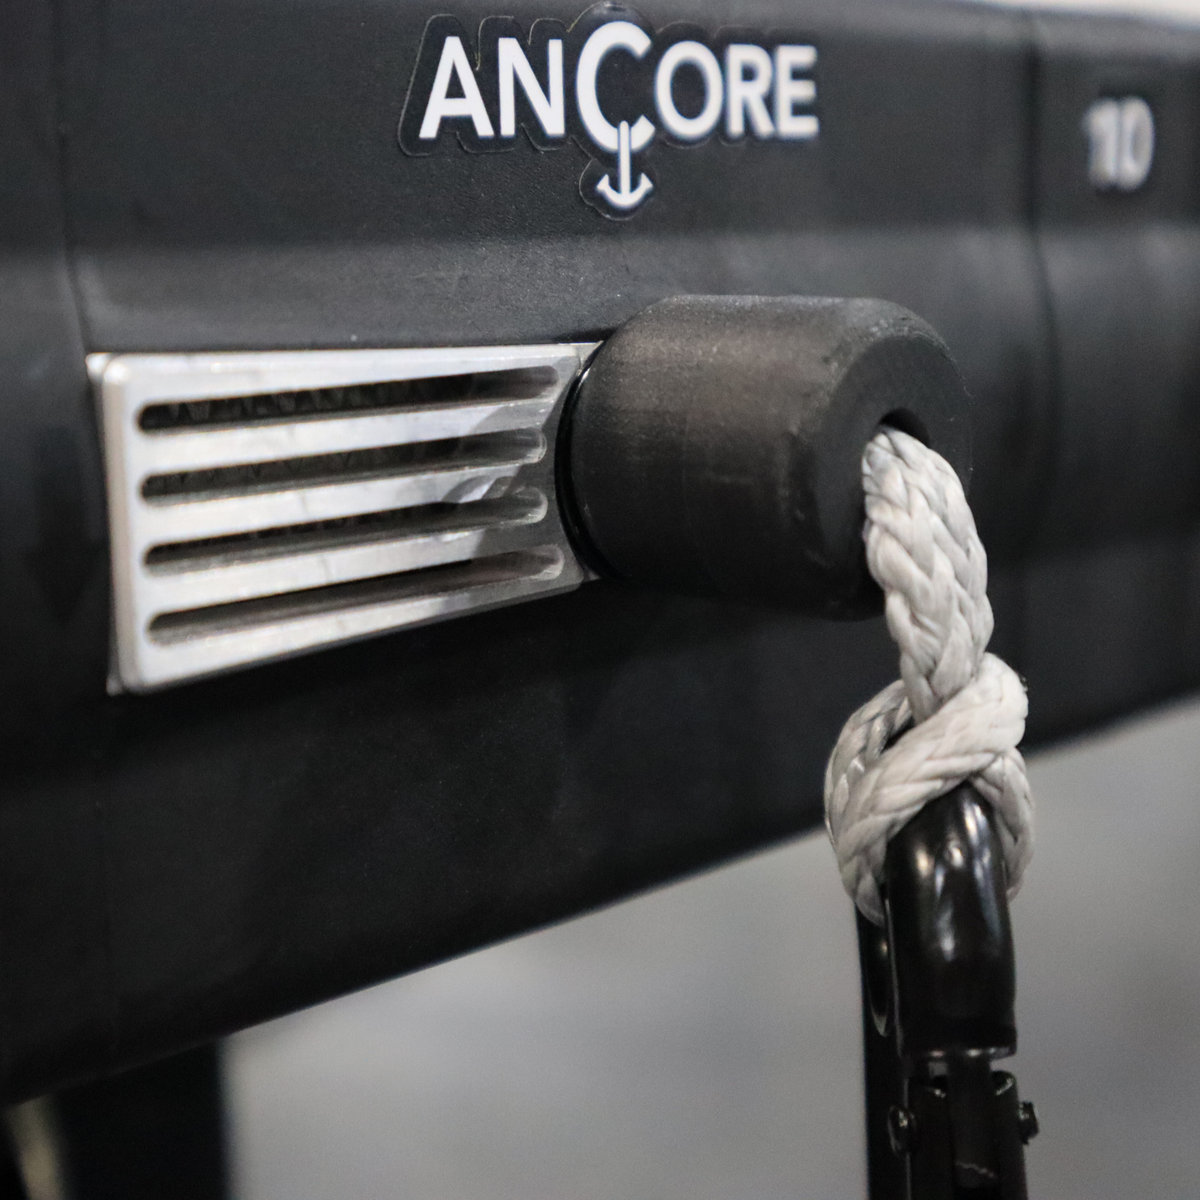 the ancore trainer and rack mount on a squat rack